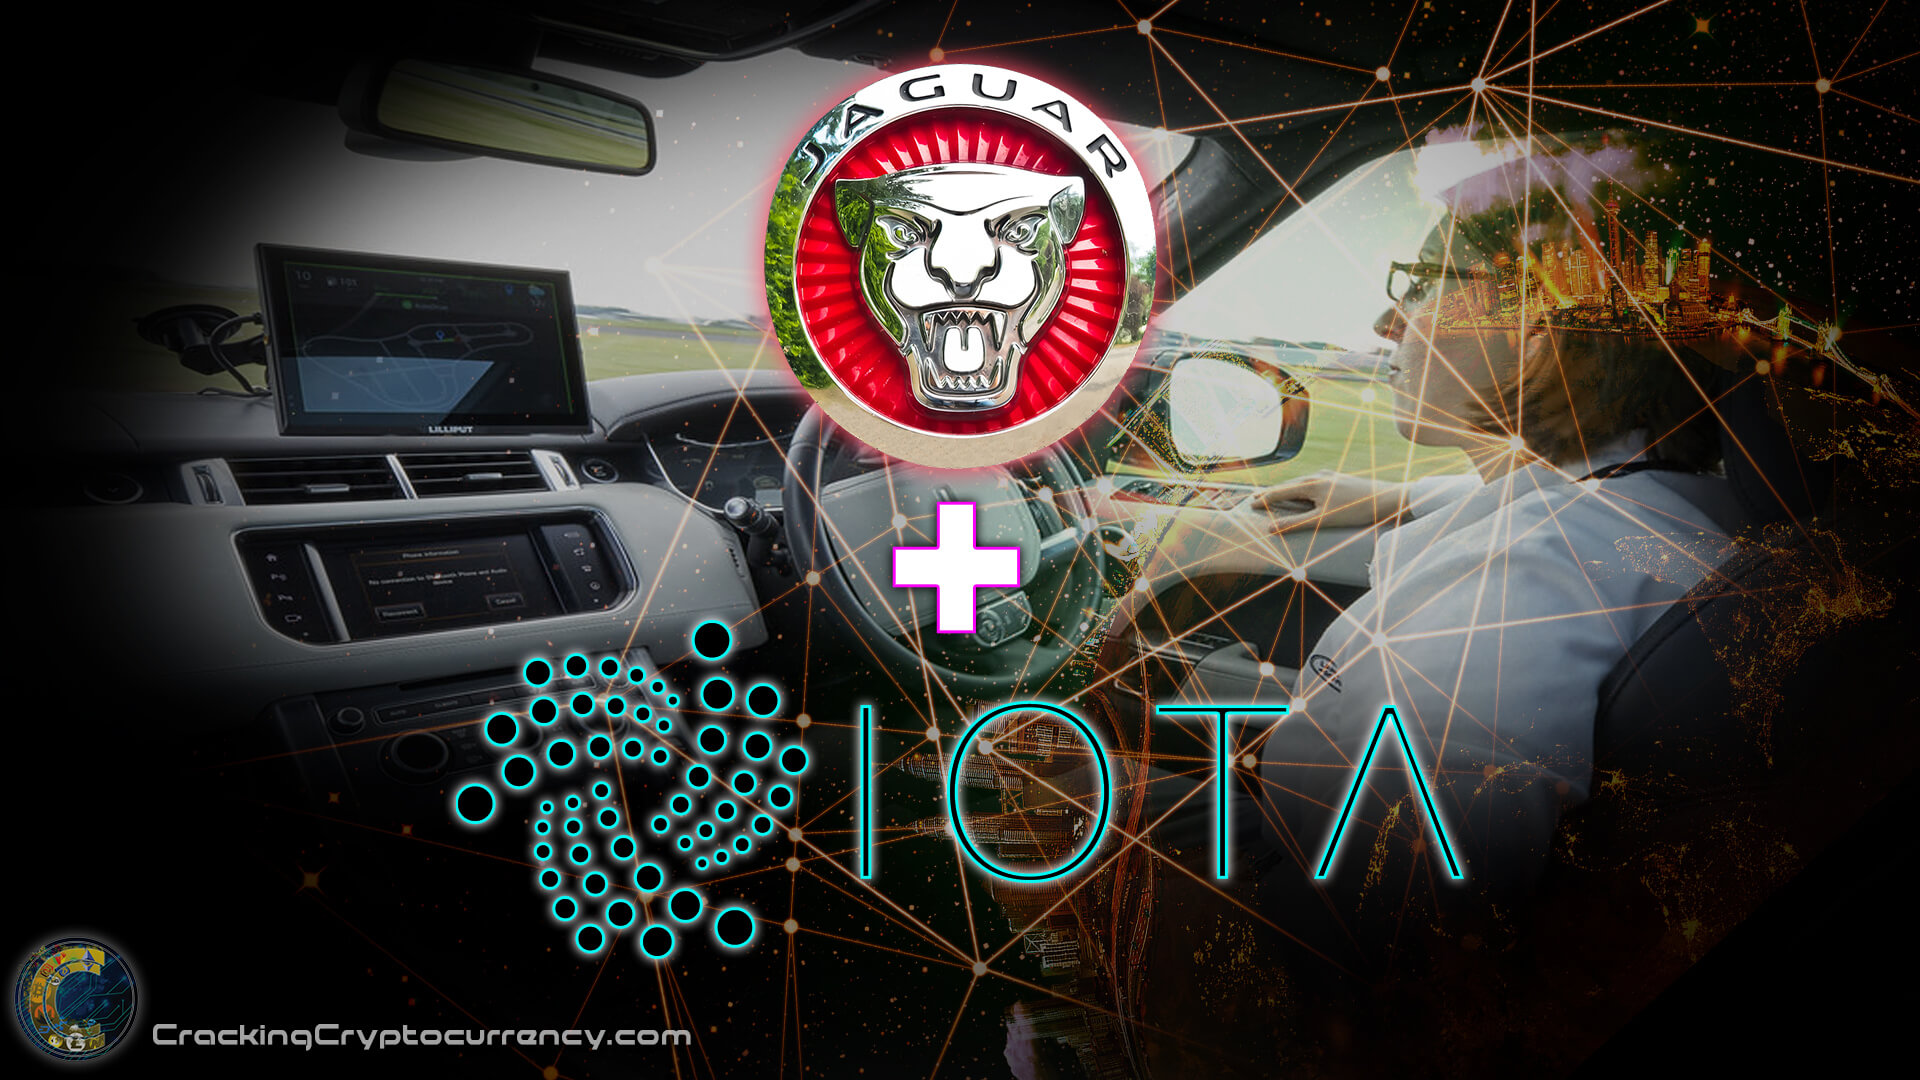 jaguar car logo and iota logo over inside land rover looking at dash with screen and driver with tech network overlay